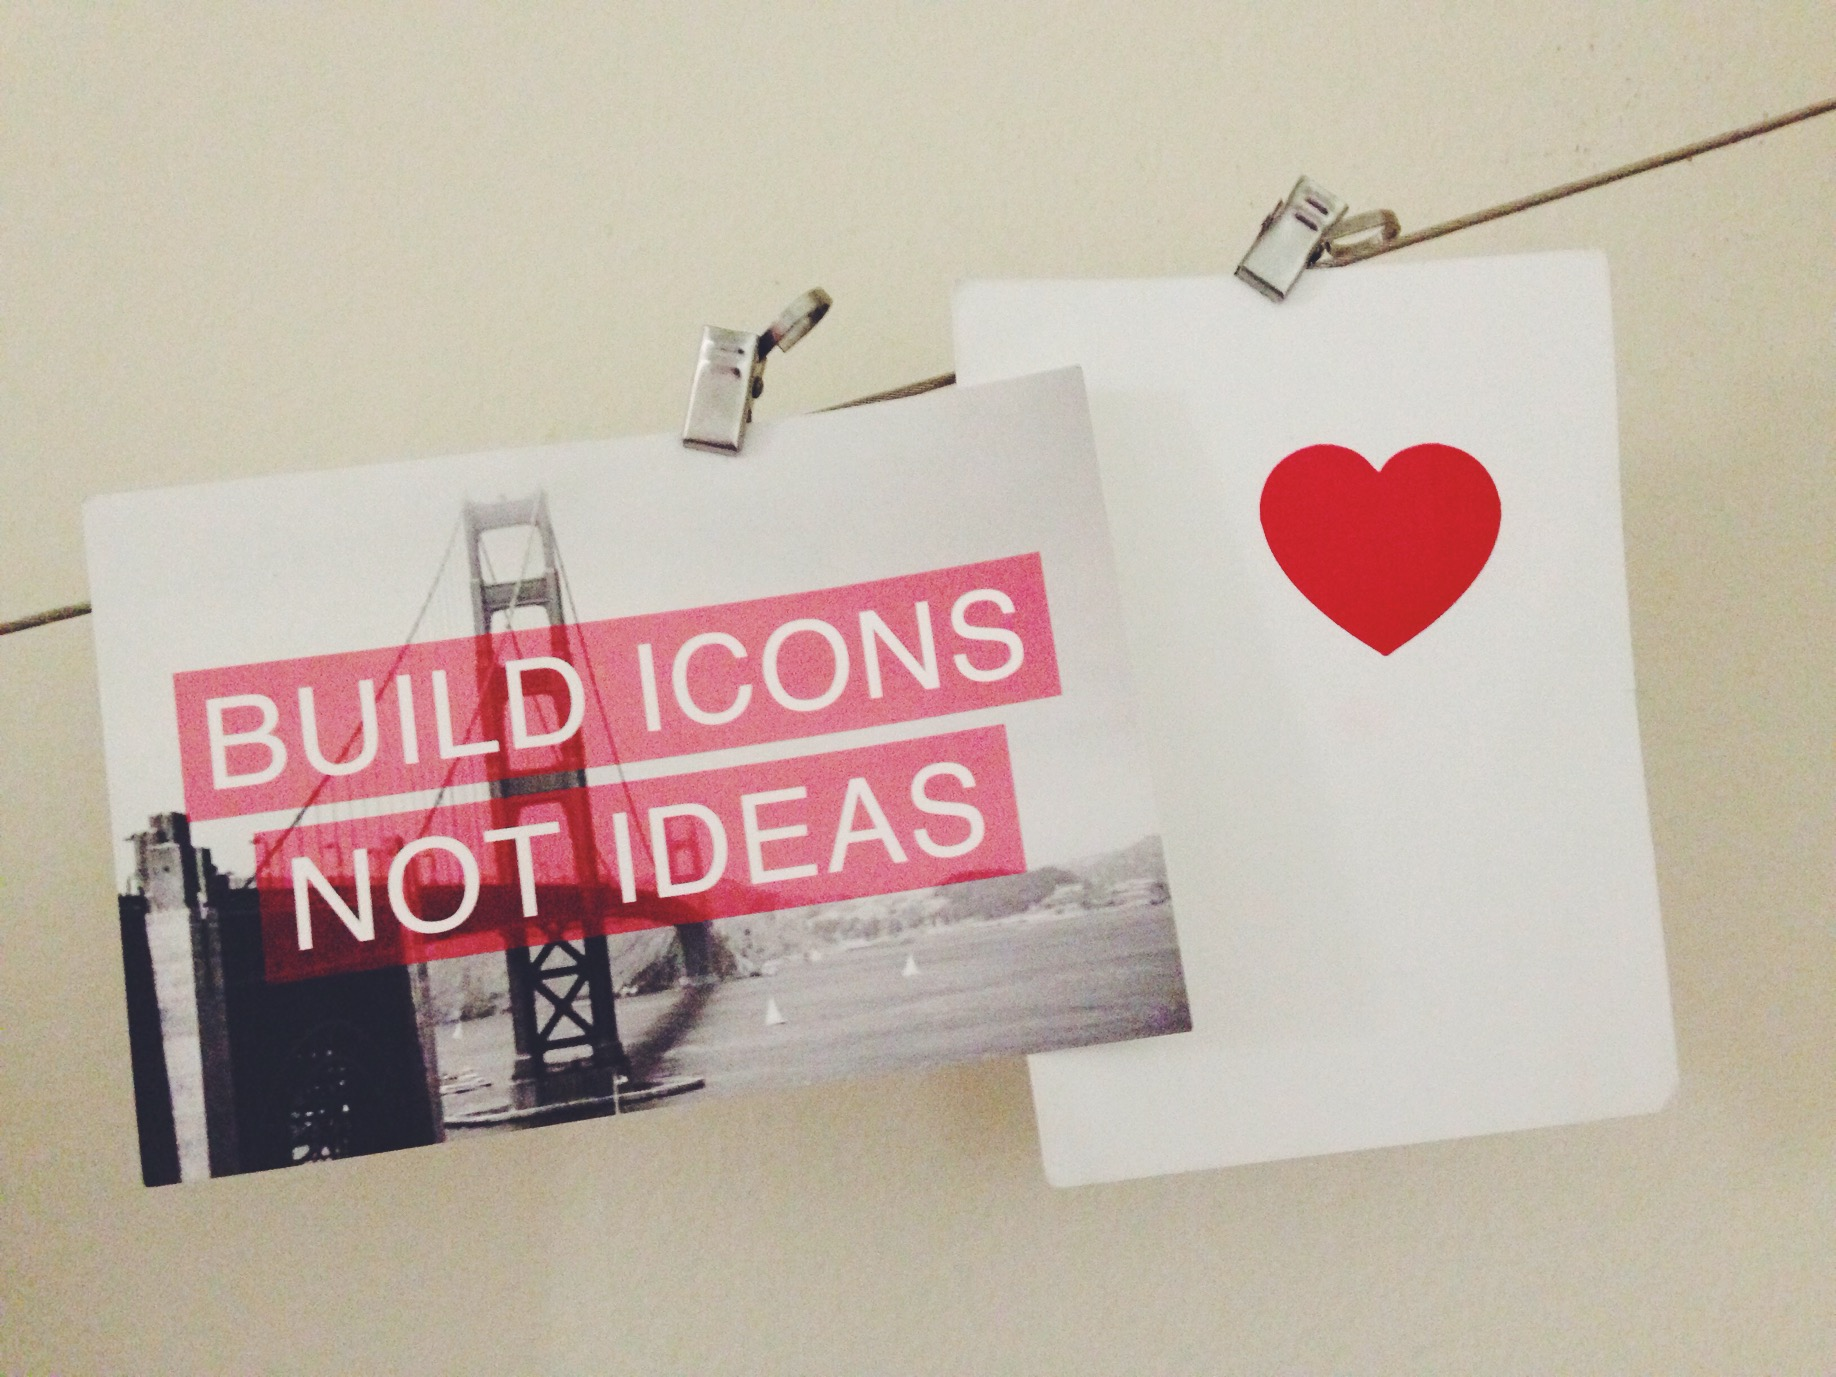 Build icons not ideas